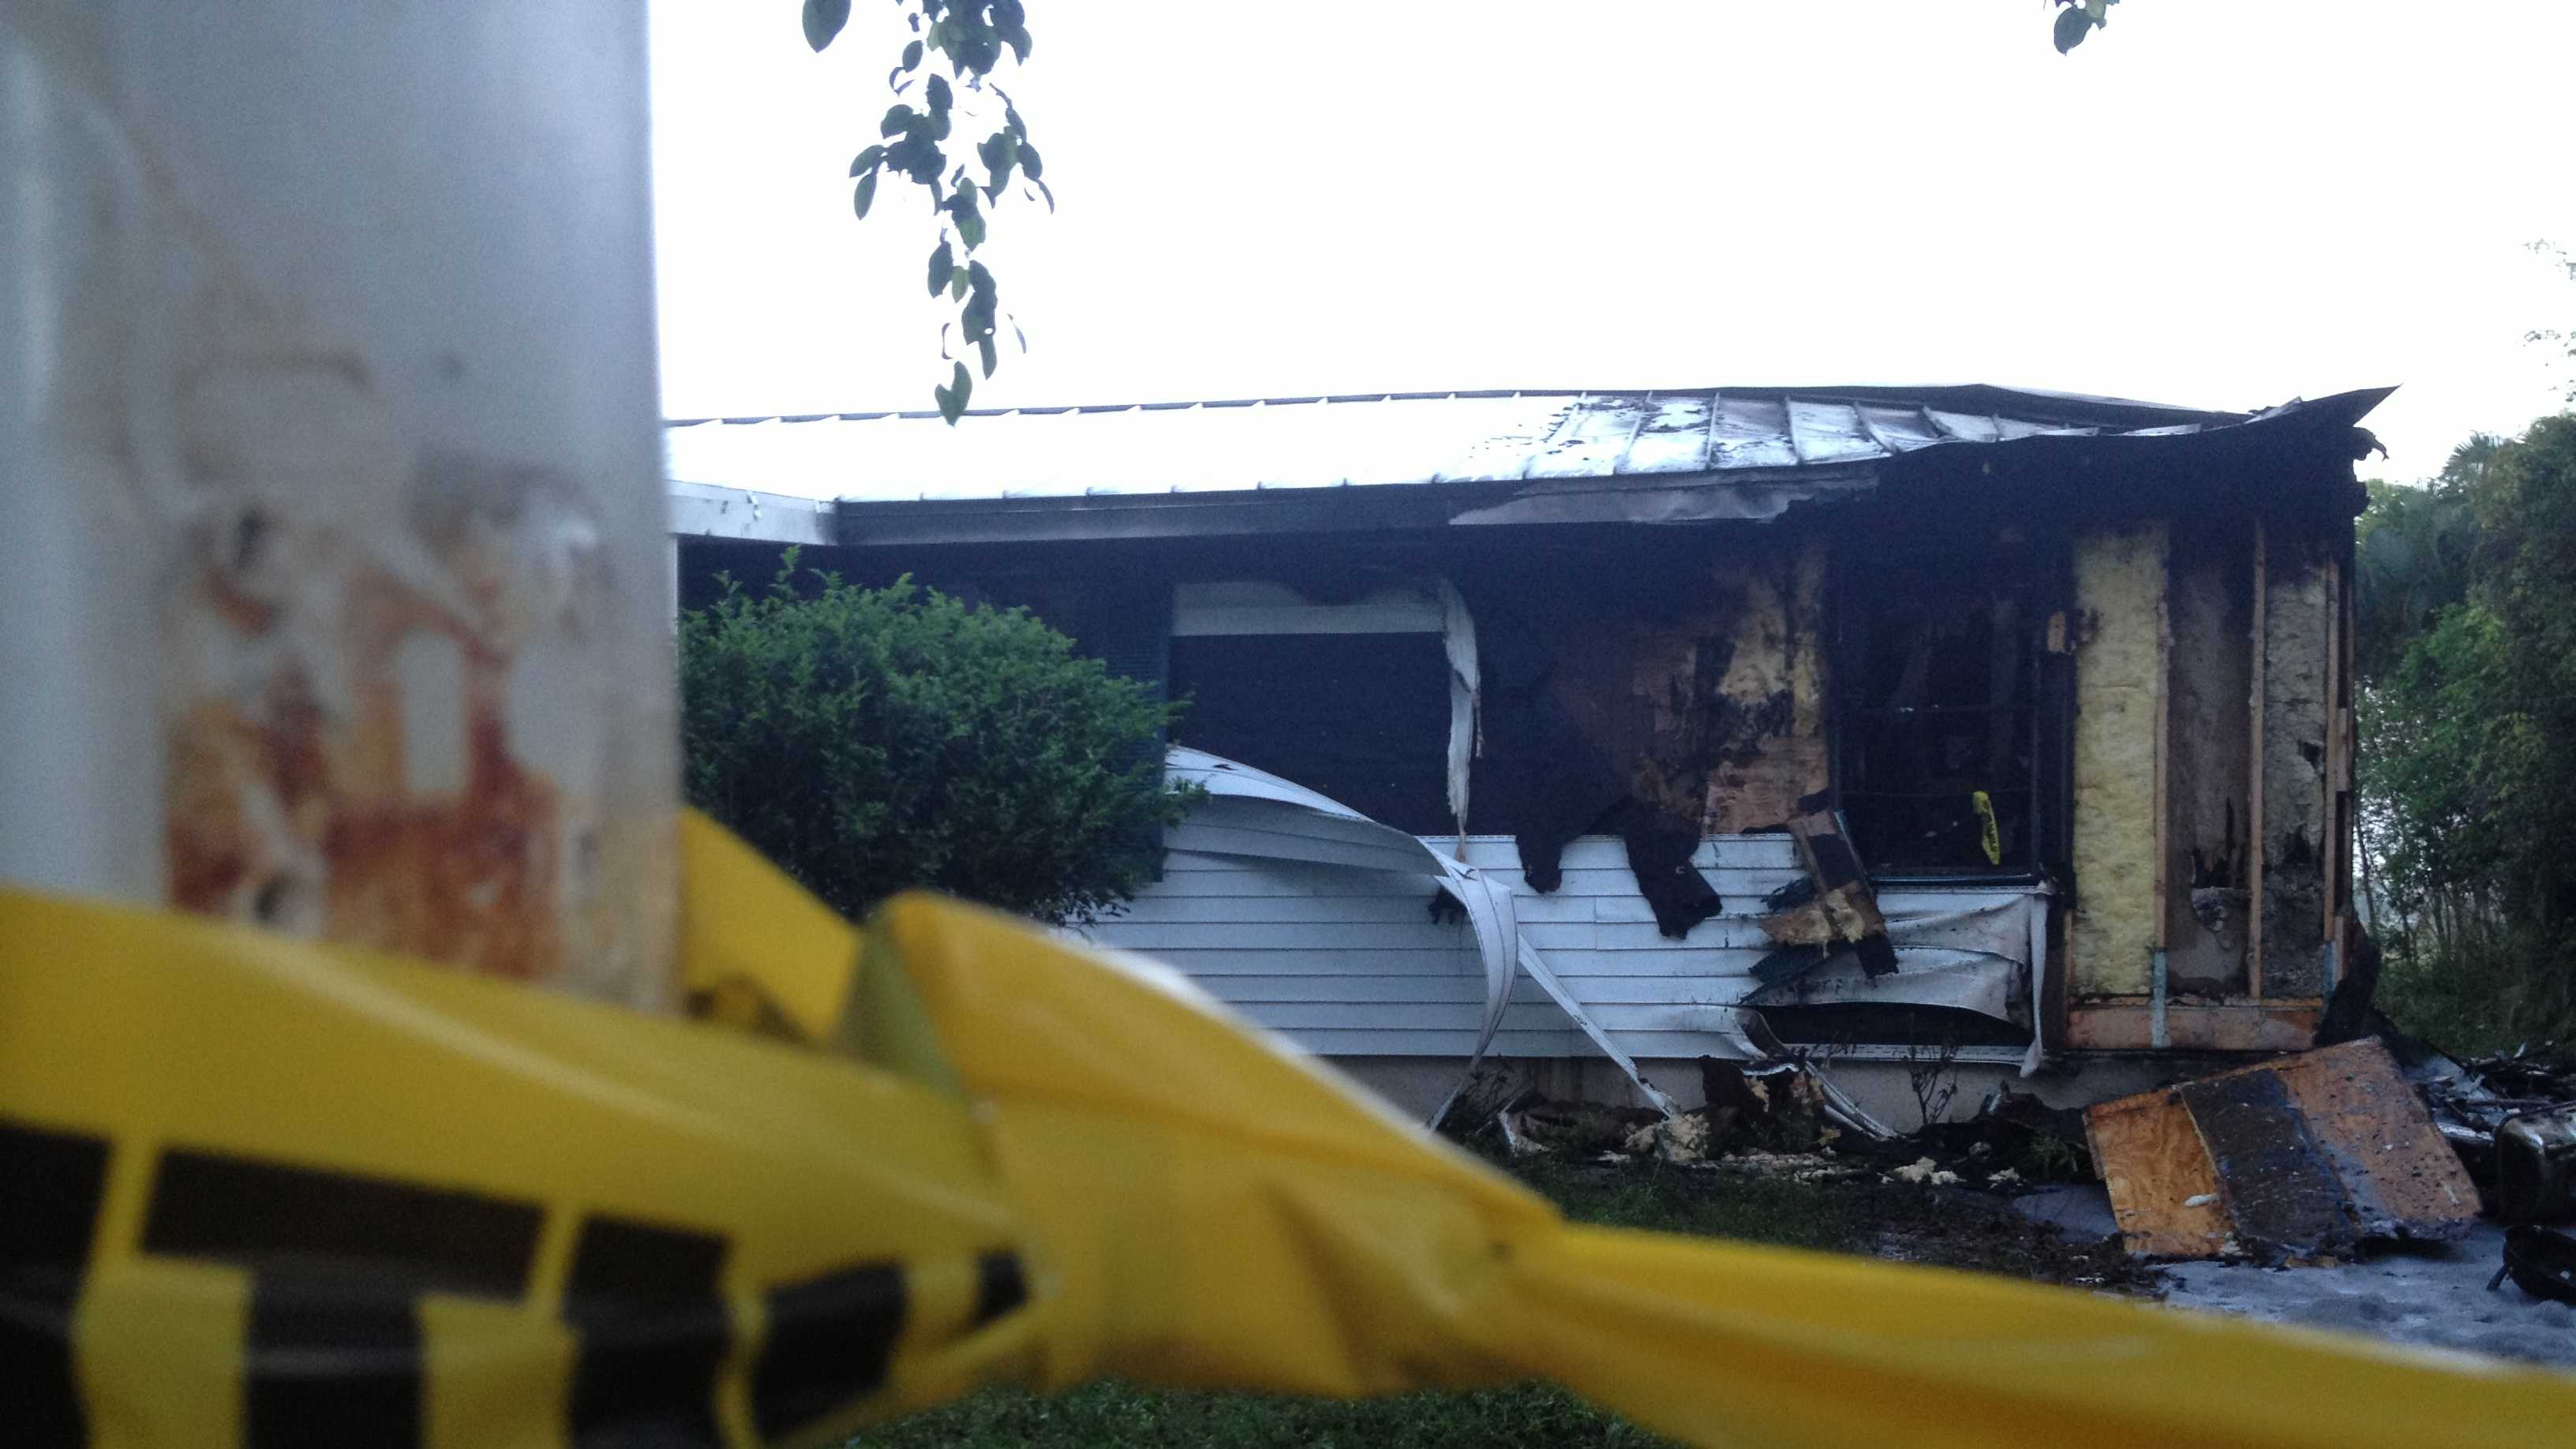 Fire officials reported there were no fire detectors in a burning house in Delray Beach on Tuesday morning.